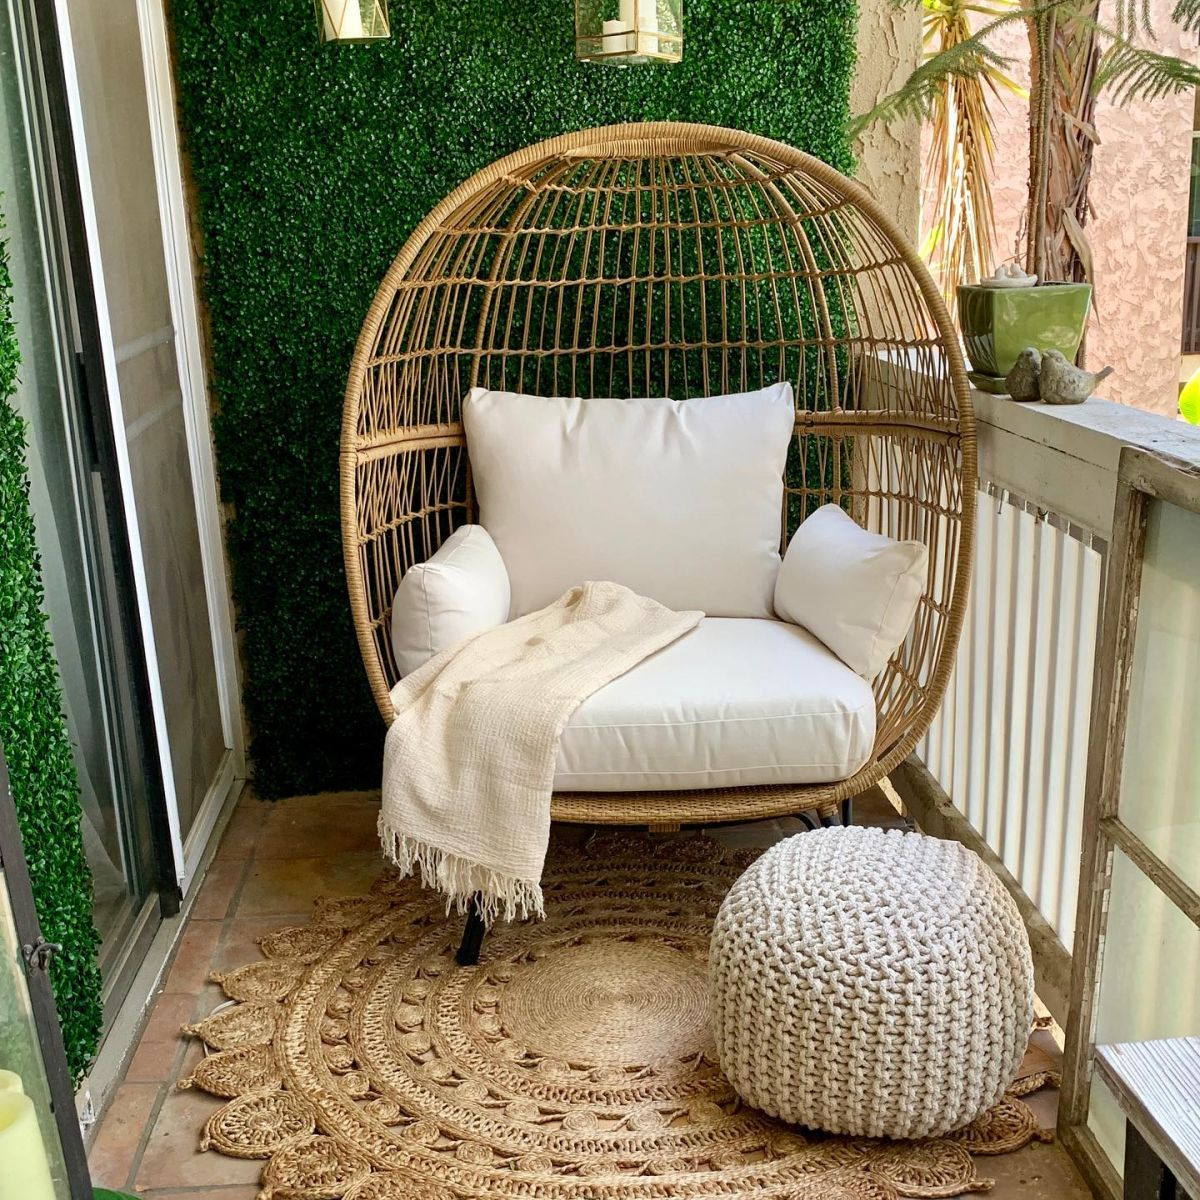 Southport Patio Egg Chair from Taget - photo from My Little French Venue.